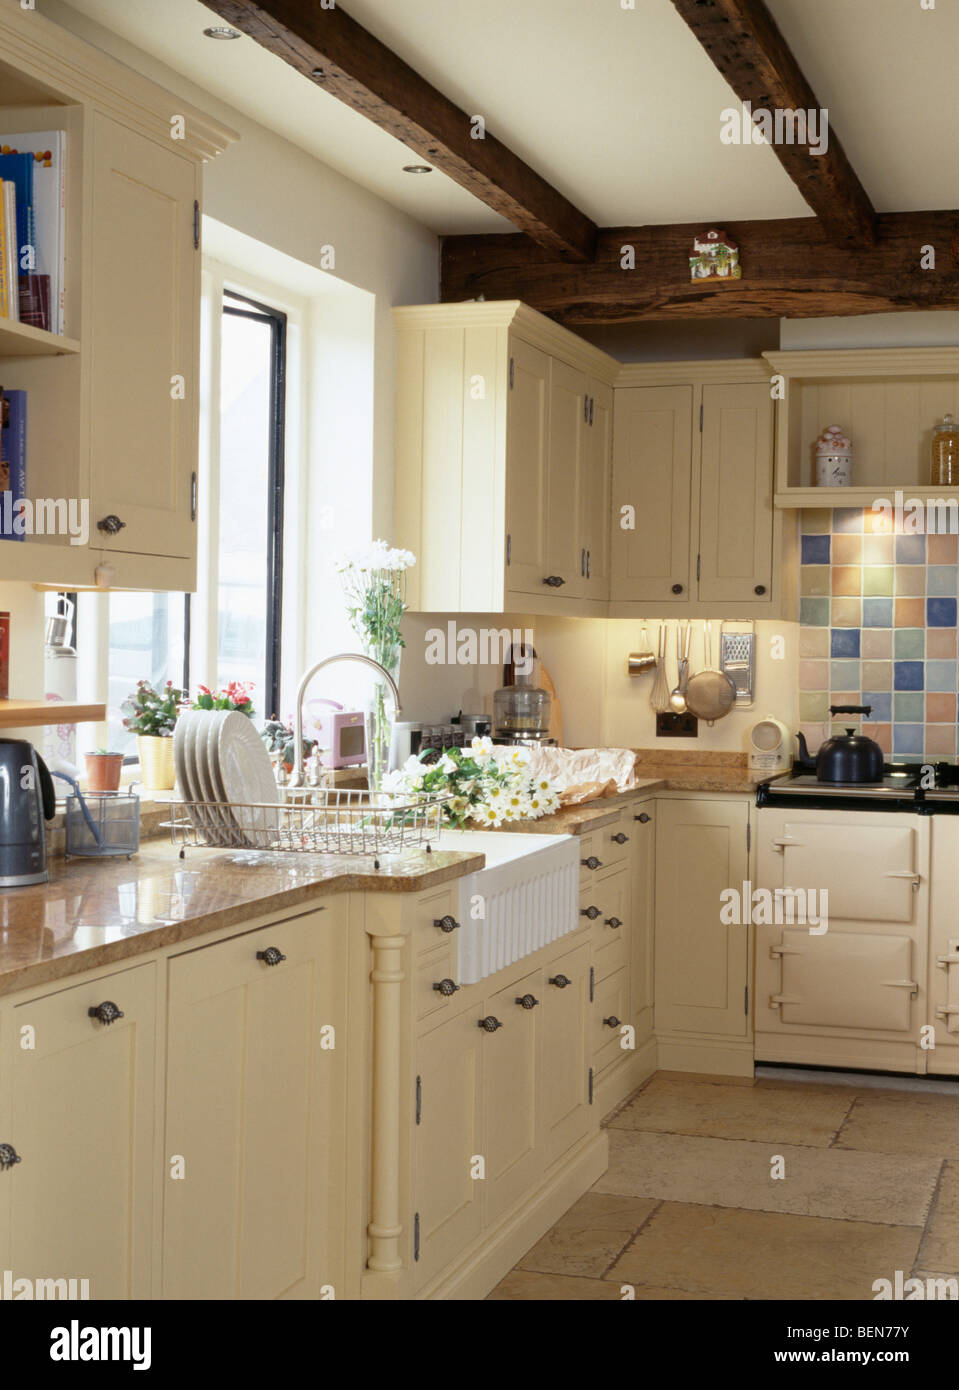 Belfast Sink Below Window In Country Cottage Kitchen With Cream Ed Units